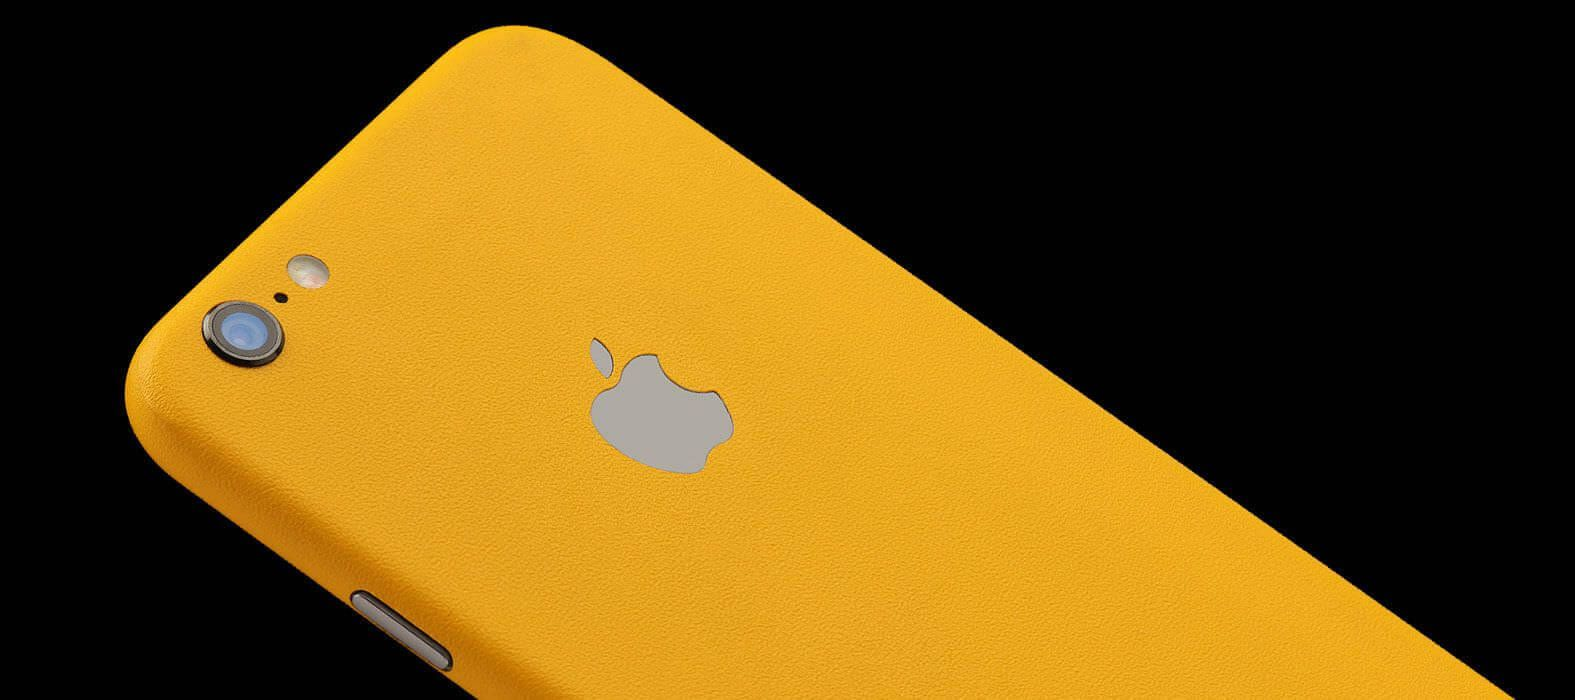 iPhone 6 Plus Skins, Wraps & decals - Sandstone yellow